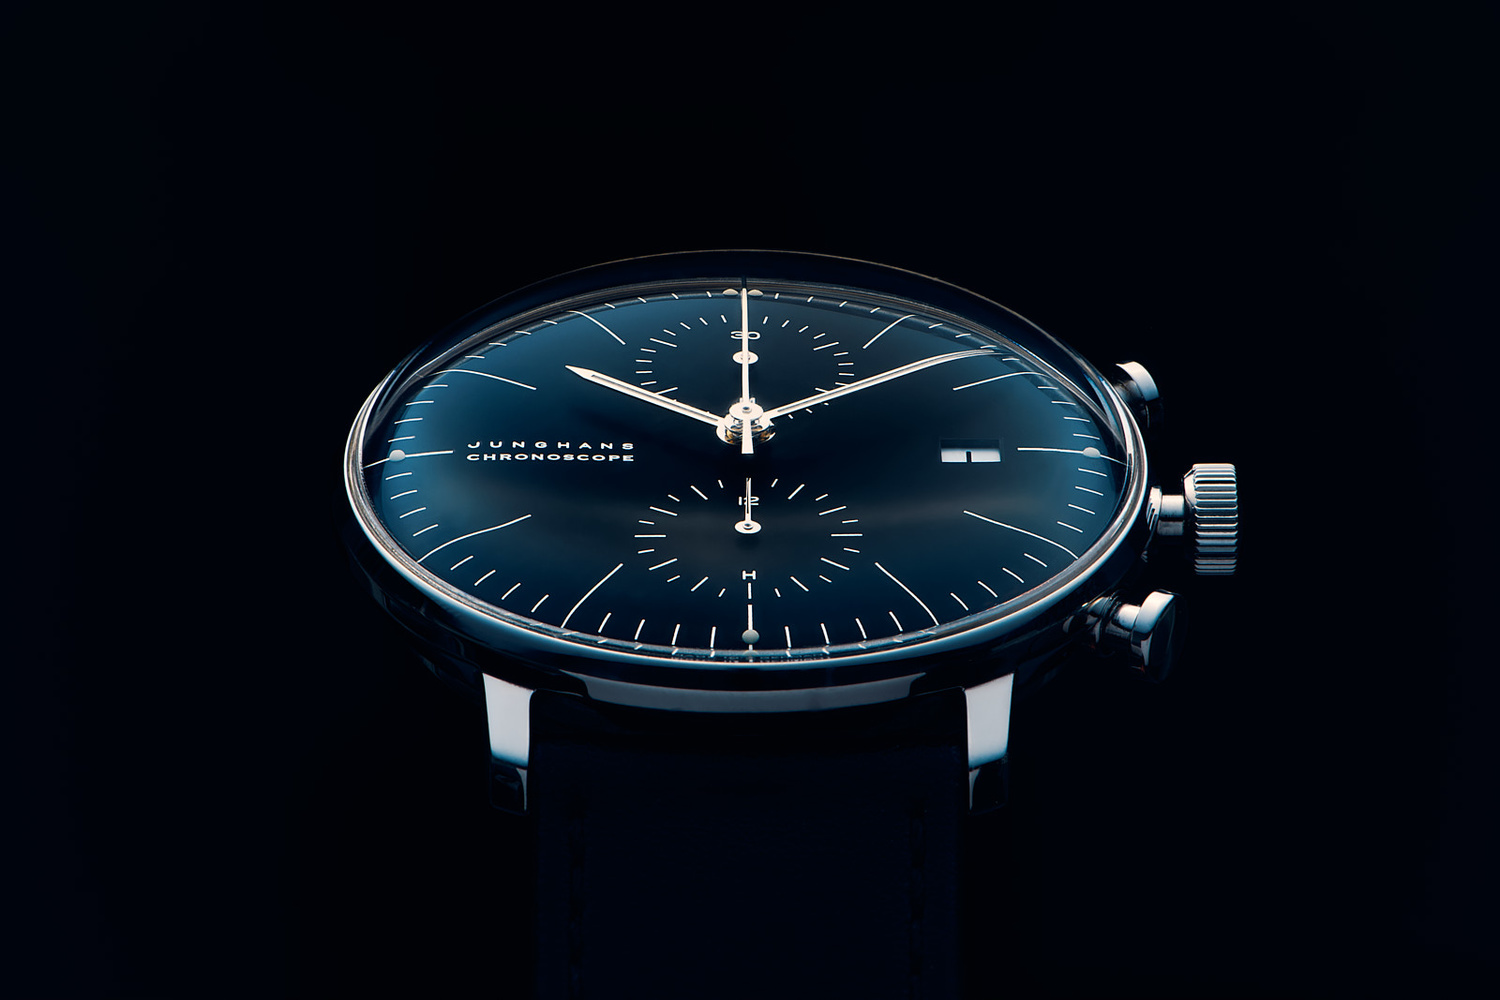 Watches photography by Clovis DURAND-MOLDAWAN